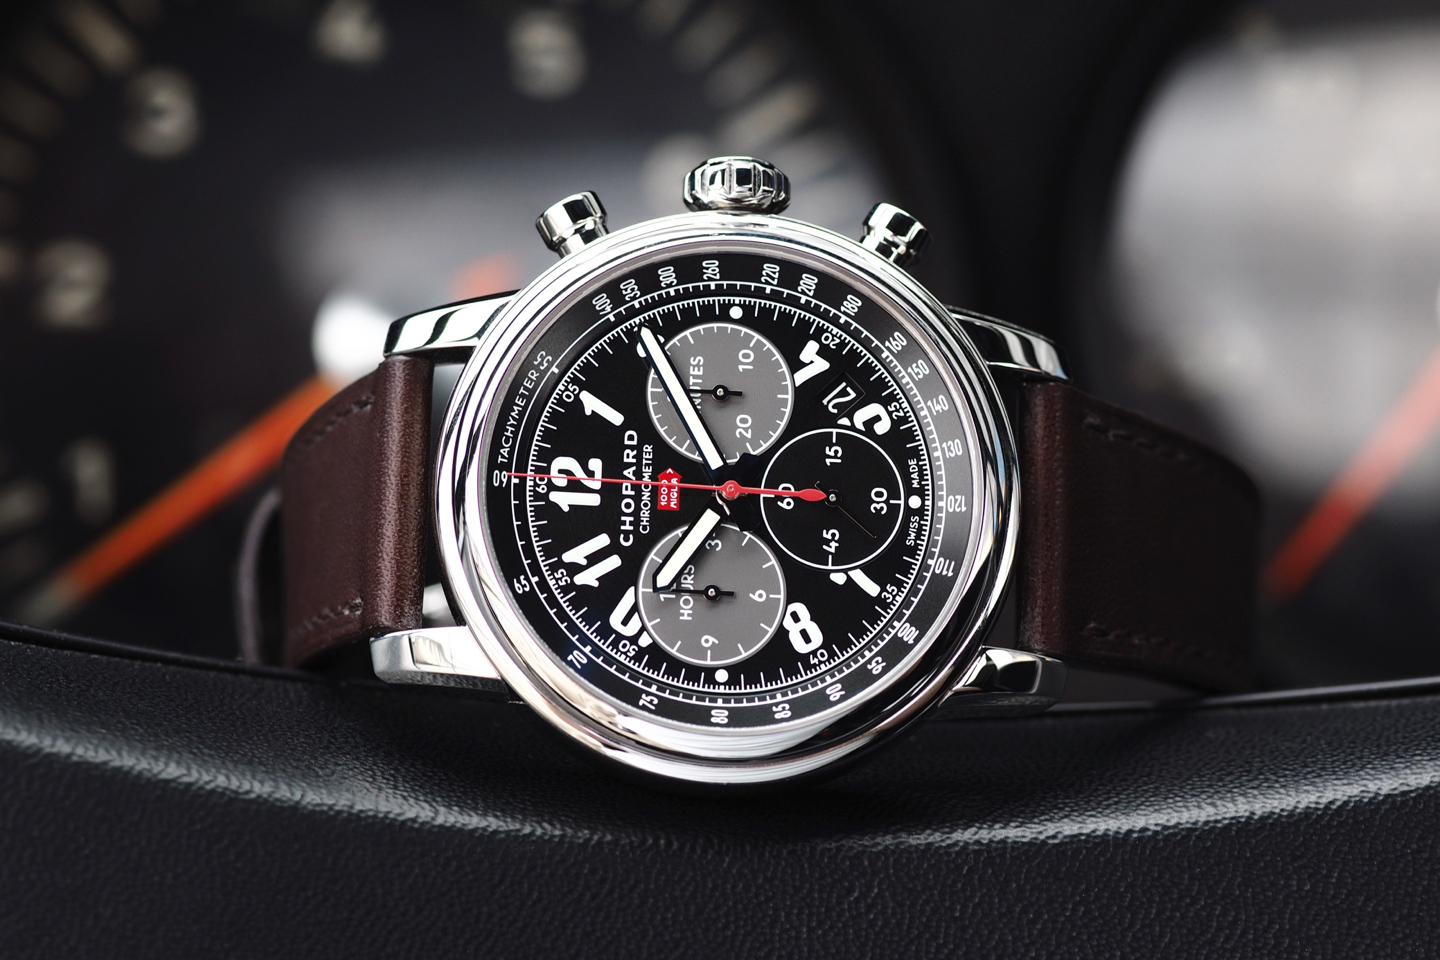 fastrider and photo video timeburner watches autoevolution car two motorcycle news cool themed gallery new